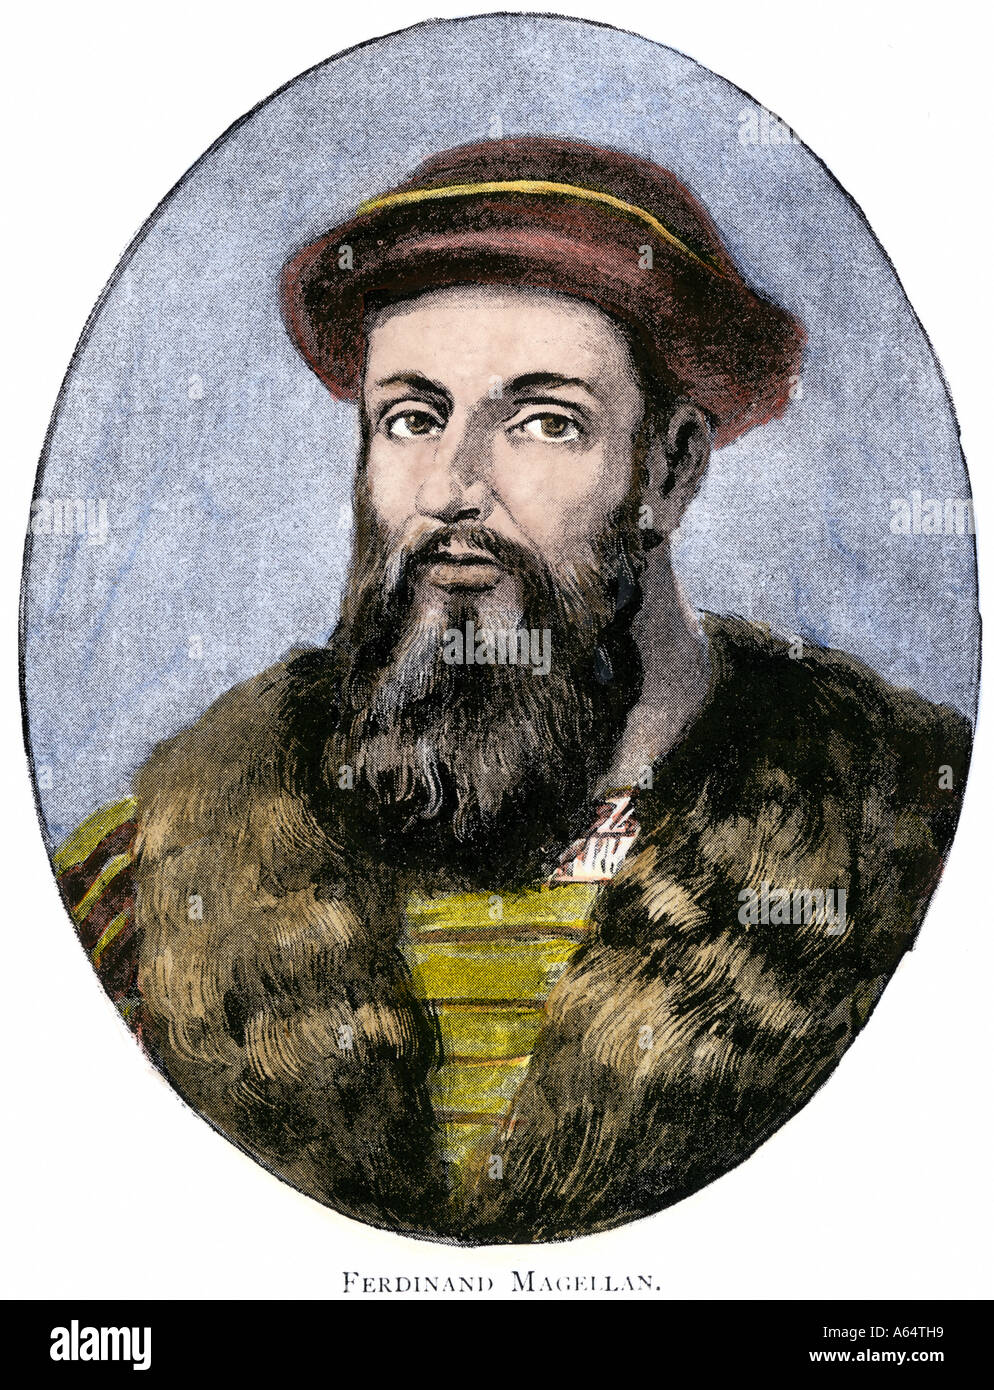 Portuguese explorer Ferdinand Magellan whose expedition first circumnavigated the globe 1519 to 1521 - Stock Image